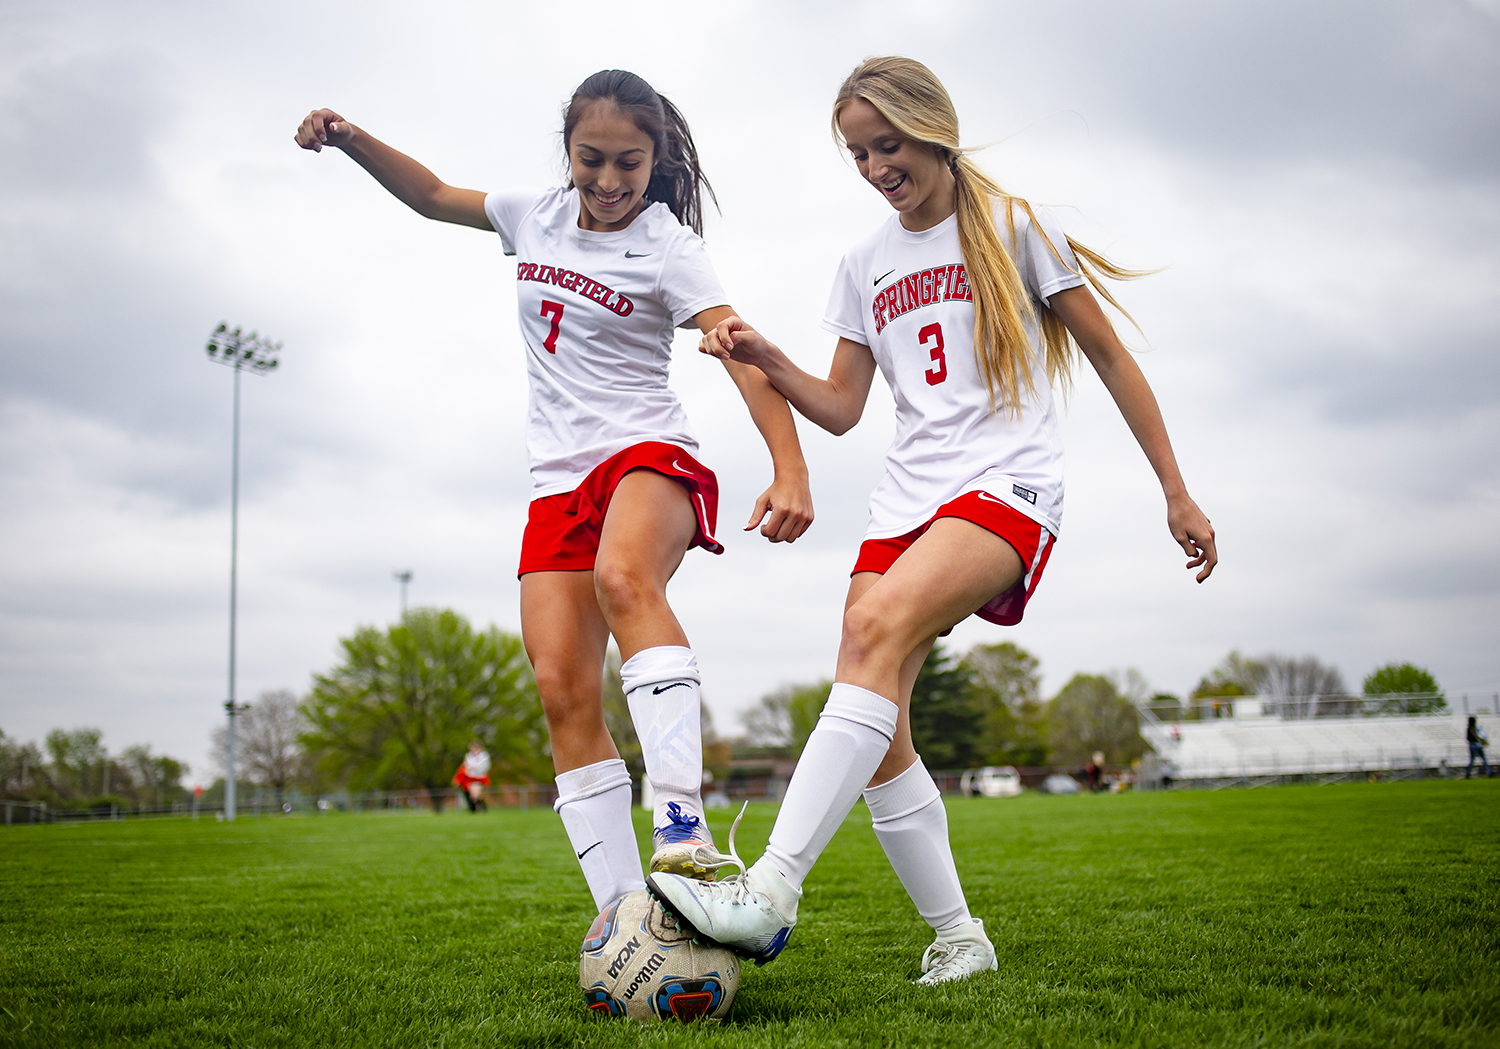 Springfield High School's Maria Jorquera, left, and Morgan Gill, right, have been playing soccer together since they were five years old on the same YMCA team and the duo are part of a Senators team at the top of the CS8 rankings with Chatham and currently undefeated in the league. [Justin L. Fowler/The State Journal-Register]